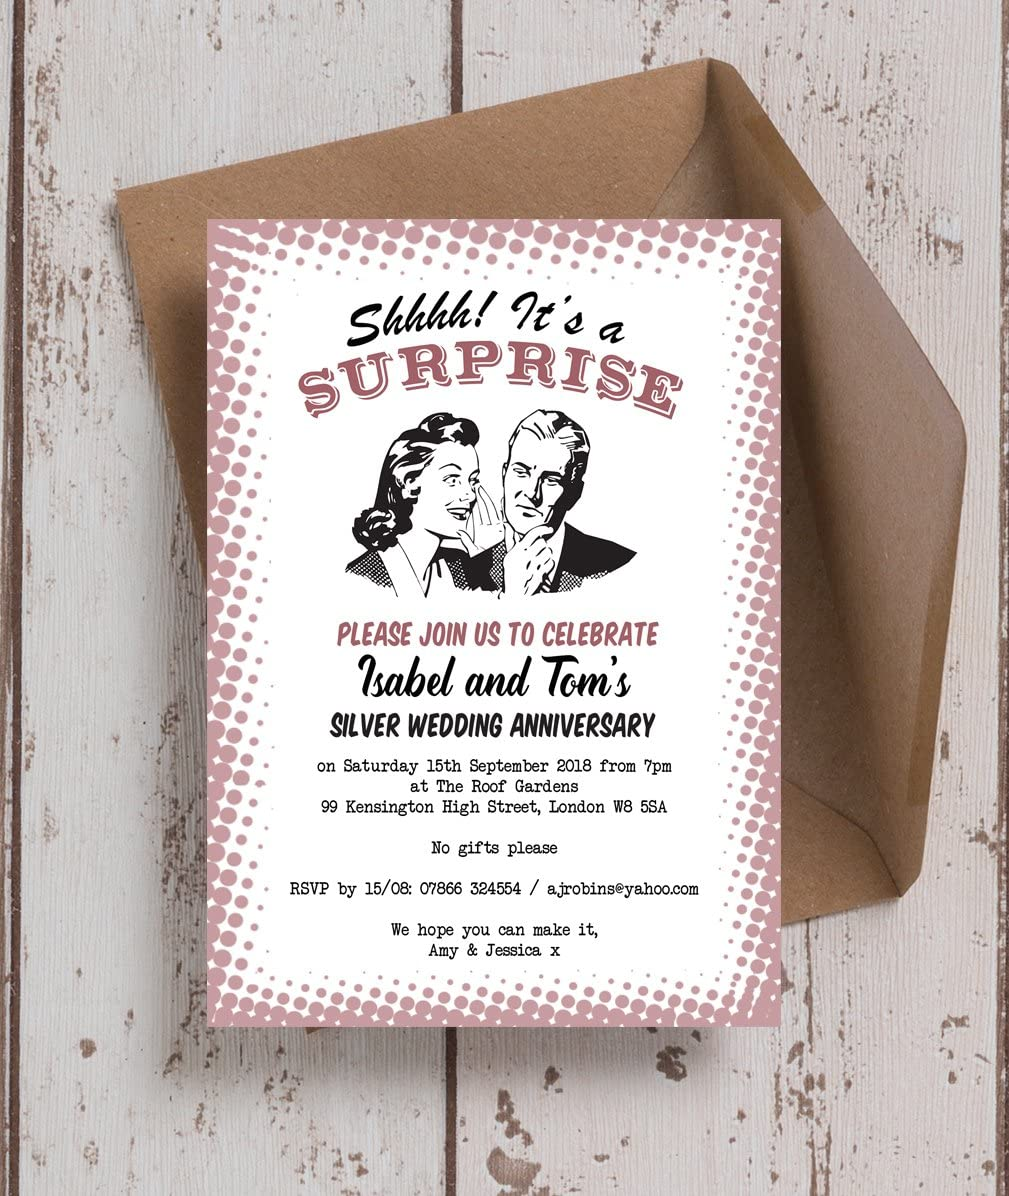 Personalised Retro Surprise Party Wedding Anniversary Invitations With Envelopes Pack Of 10 Amazon Co Uk Kitchen Home